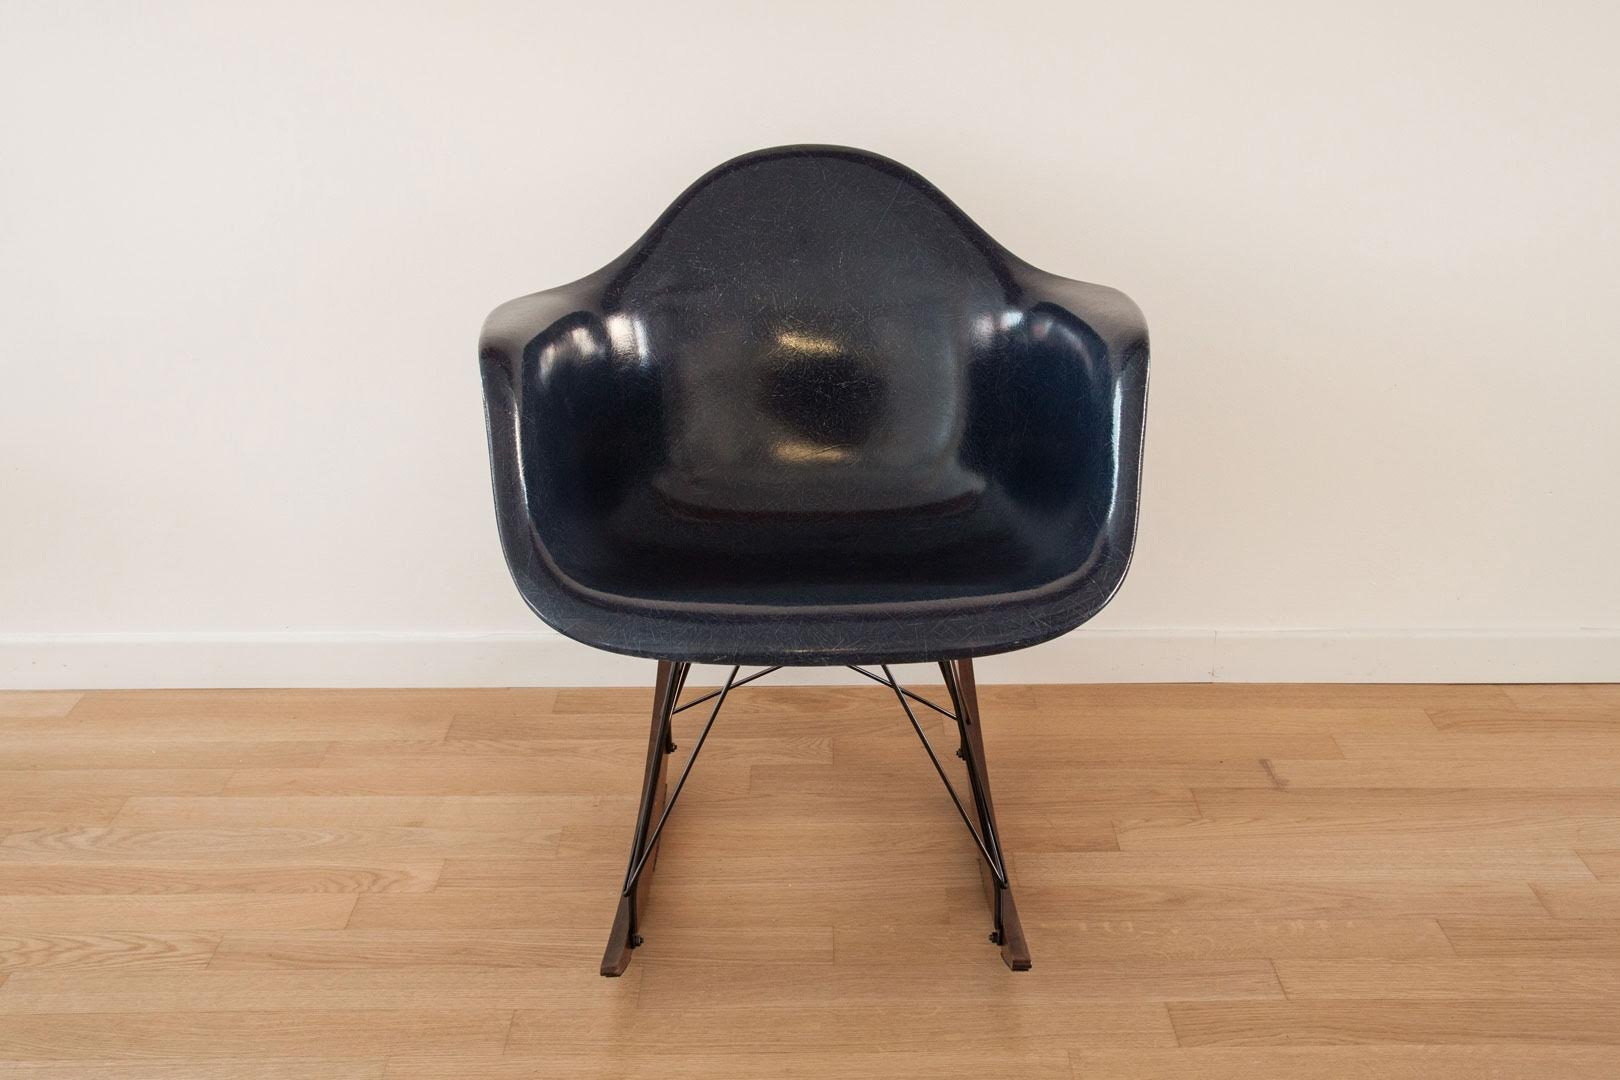 Vintage Shell Rocking Chair By Charles U0026 Ray Eames For Herman Miller